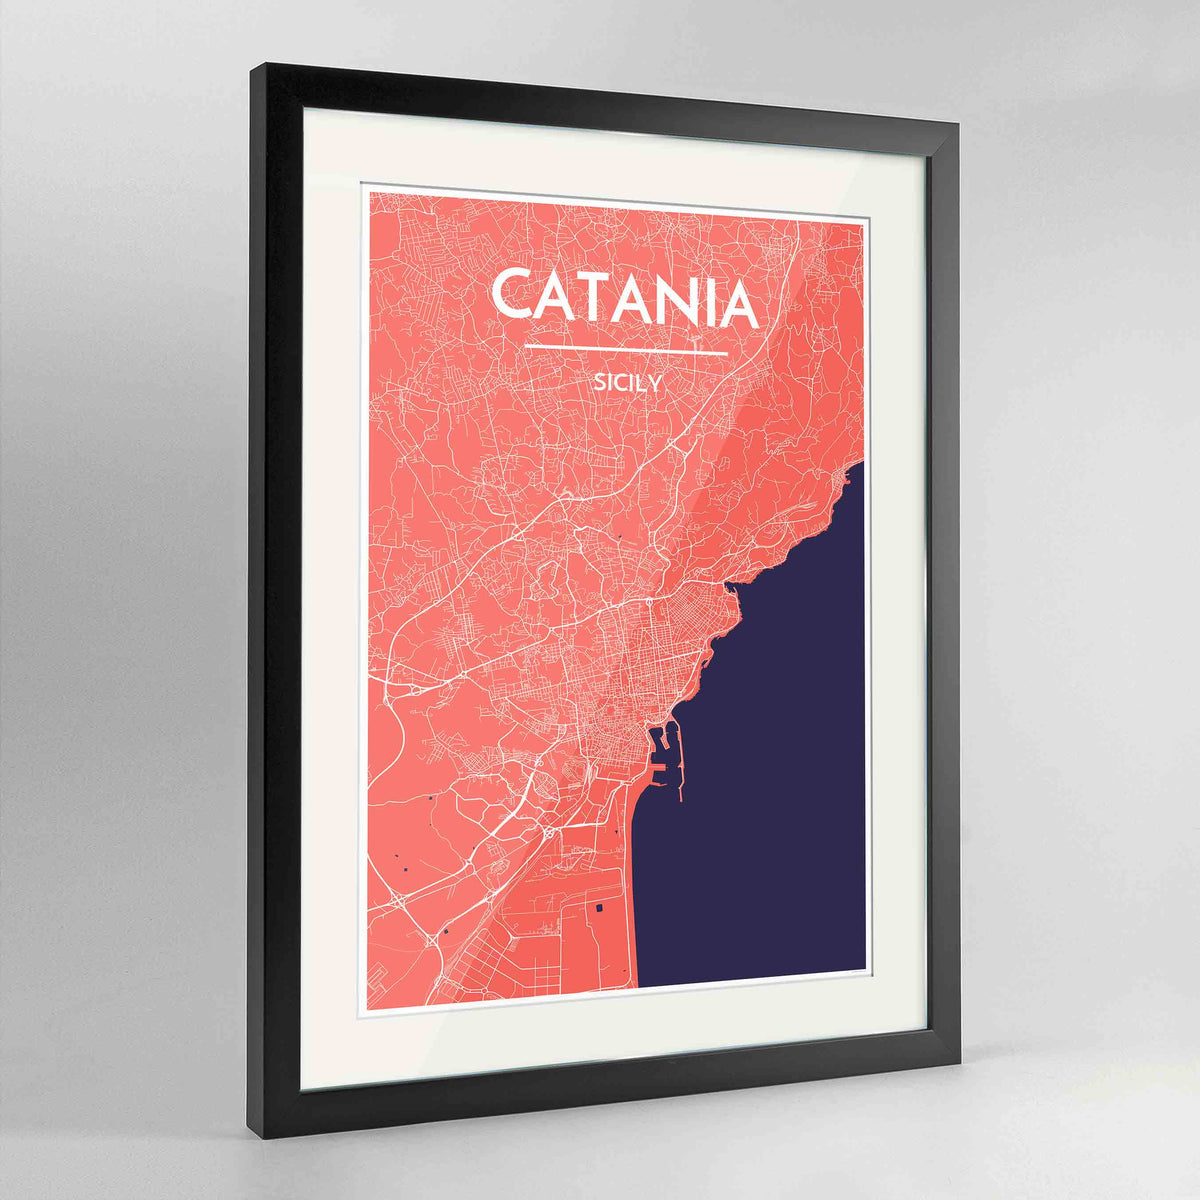 "Framed Catania Map Art Print 24x36"" Contemporary Black frame Point Two Design Group"